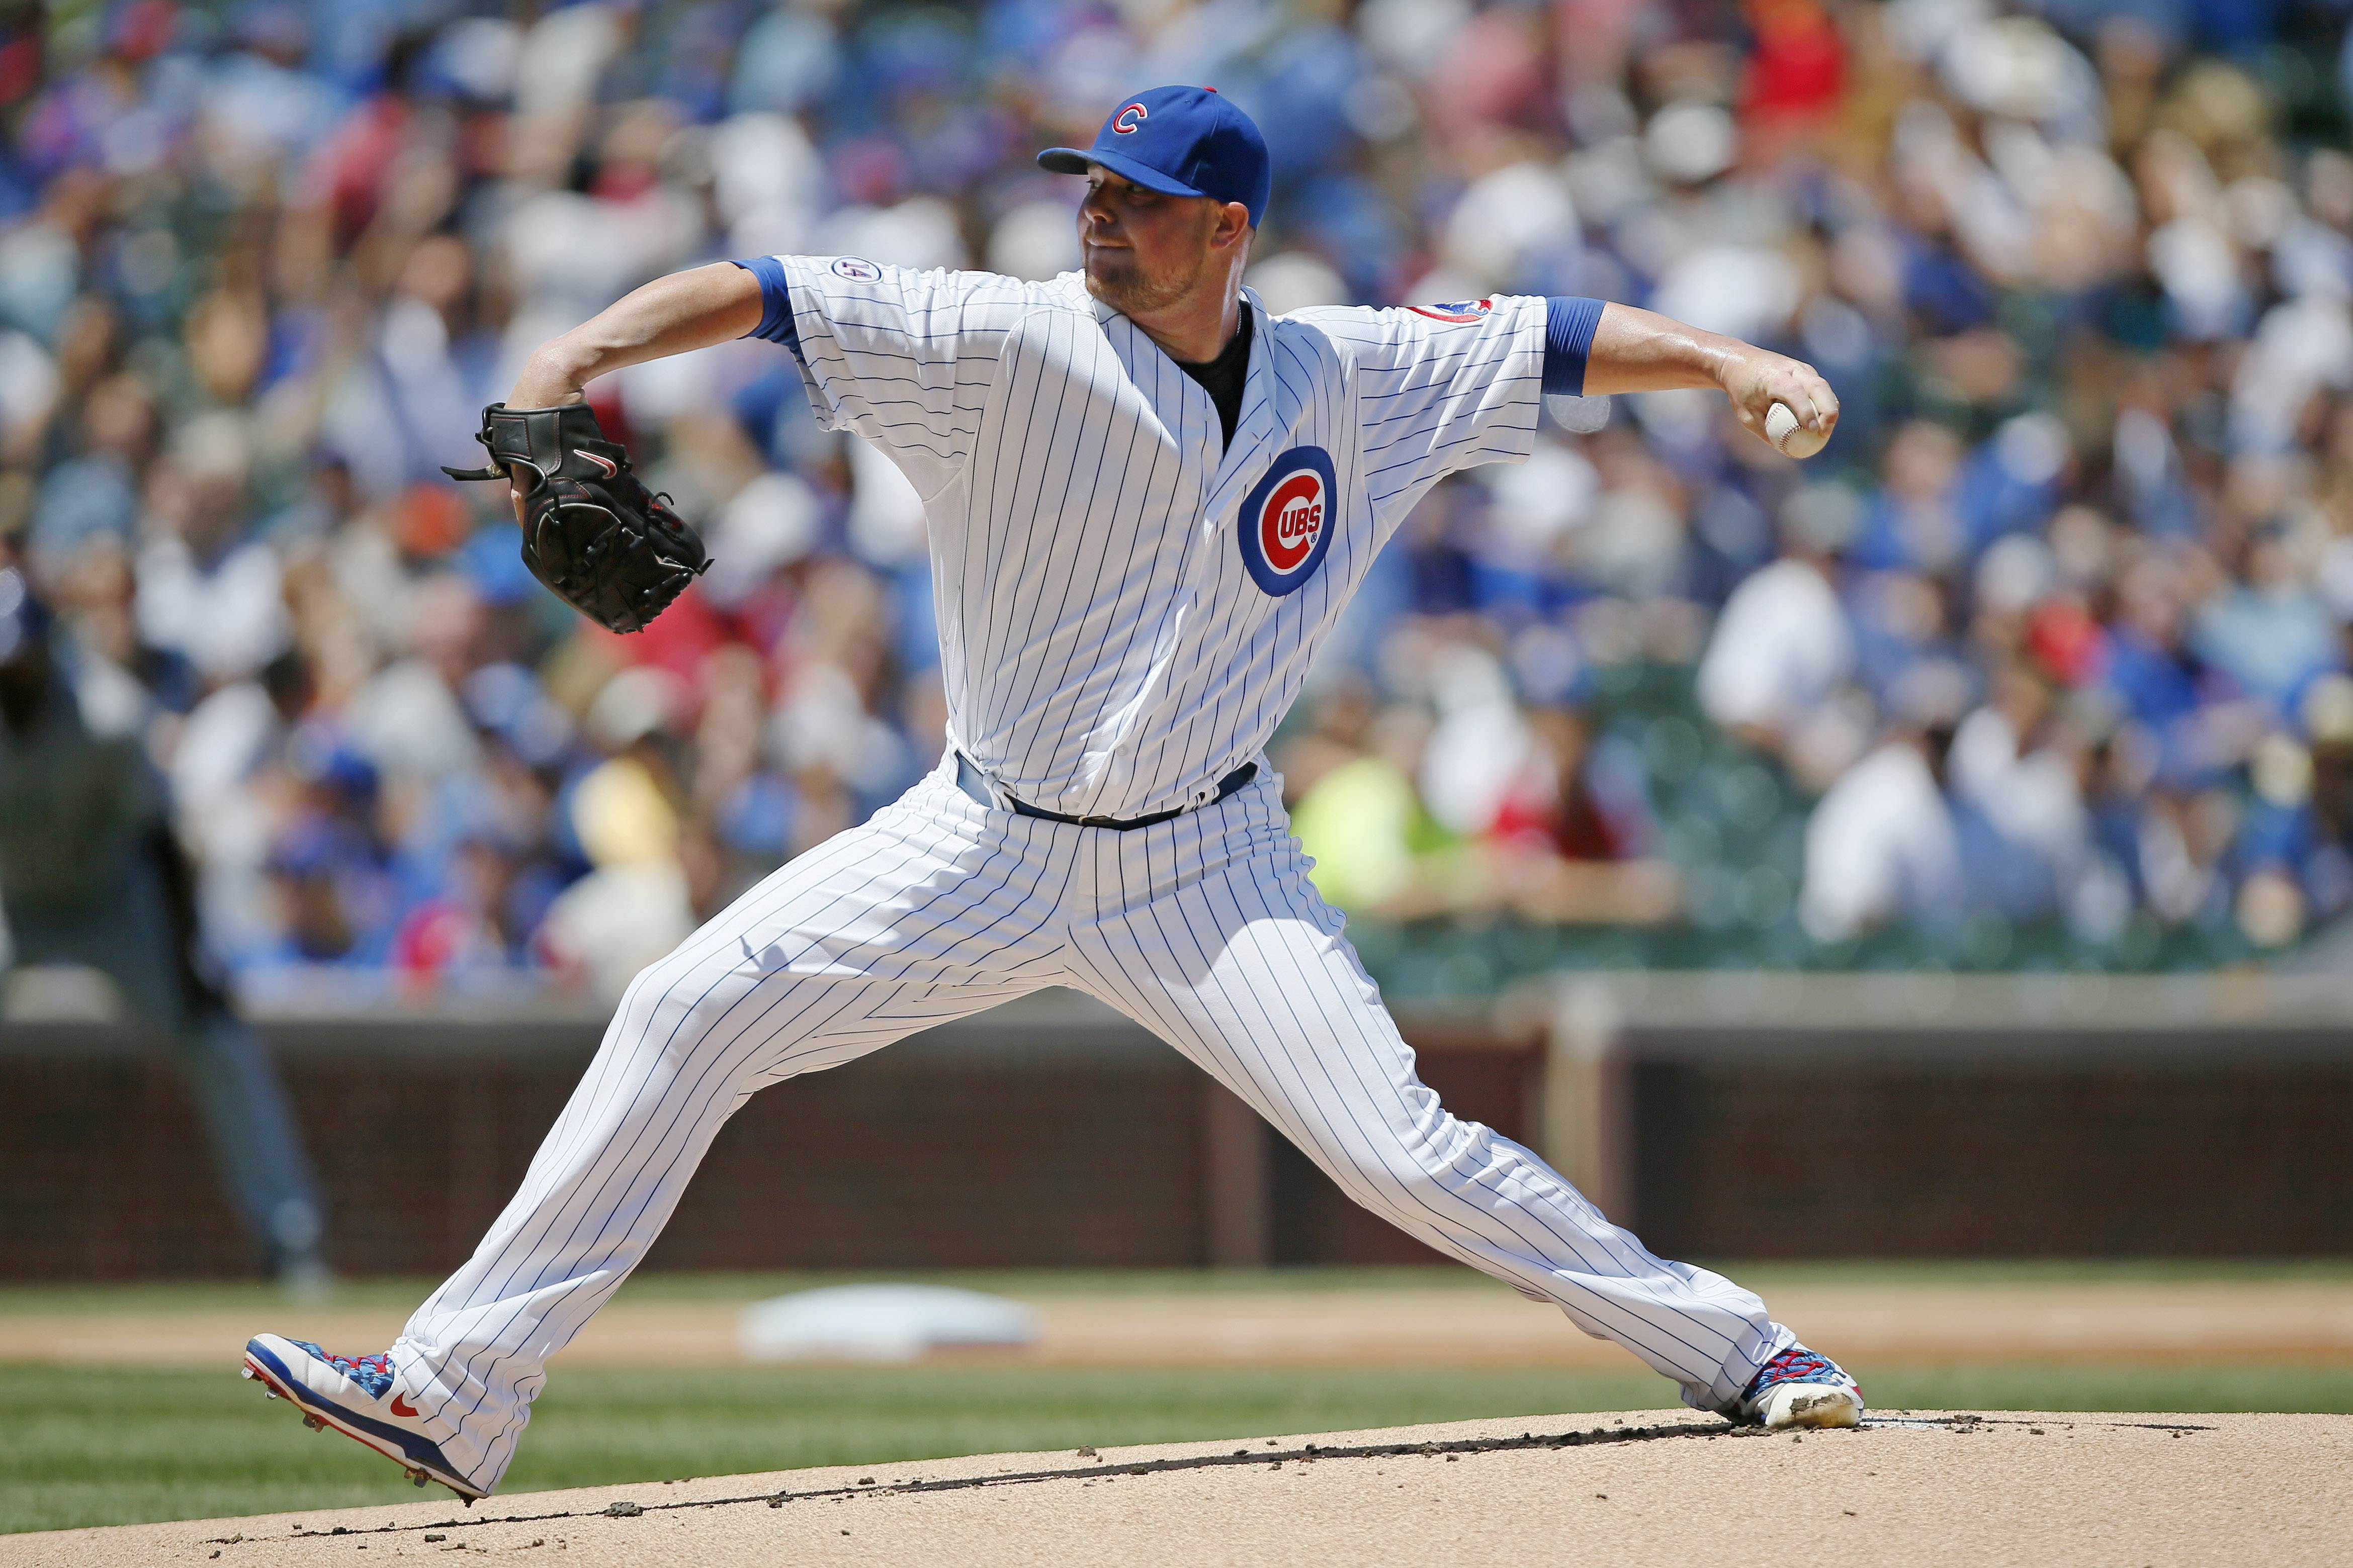 Starting pitcher Jon Lester struck out 14 over eight innings Wednesday to lead the Cubs to a 3-2 win over Colorado at Wrigley Field.